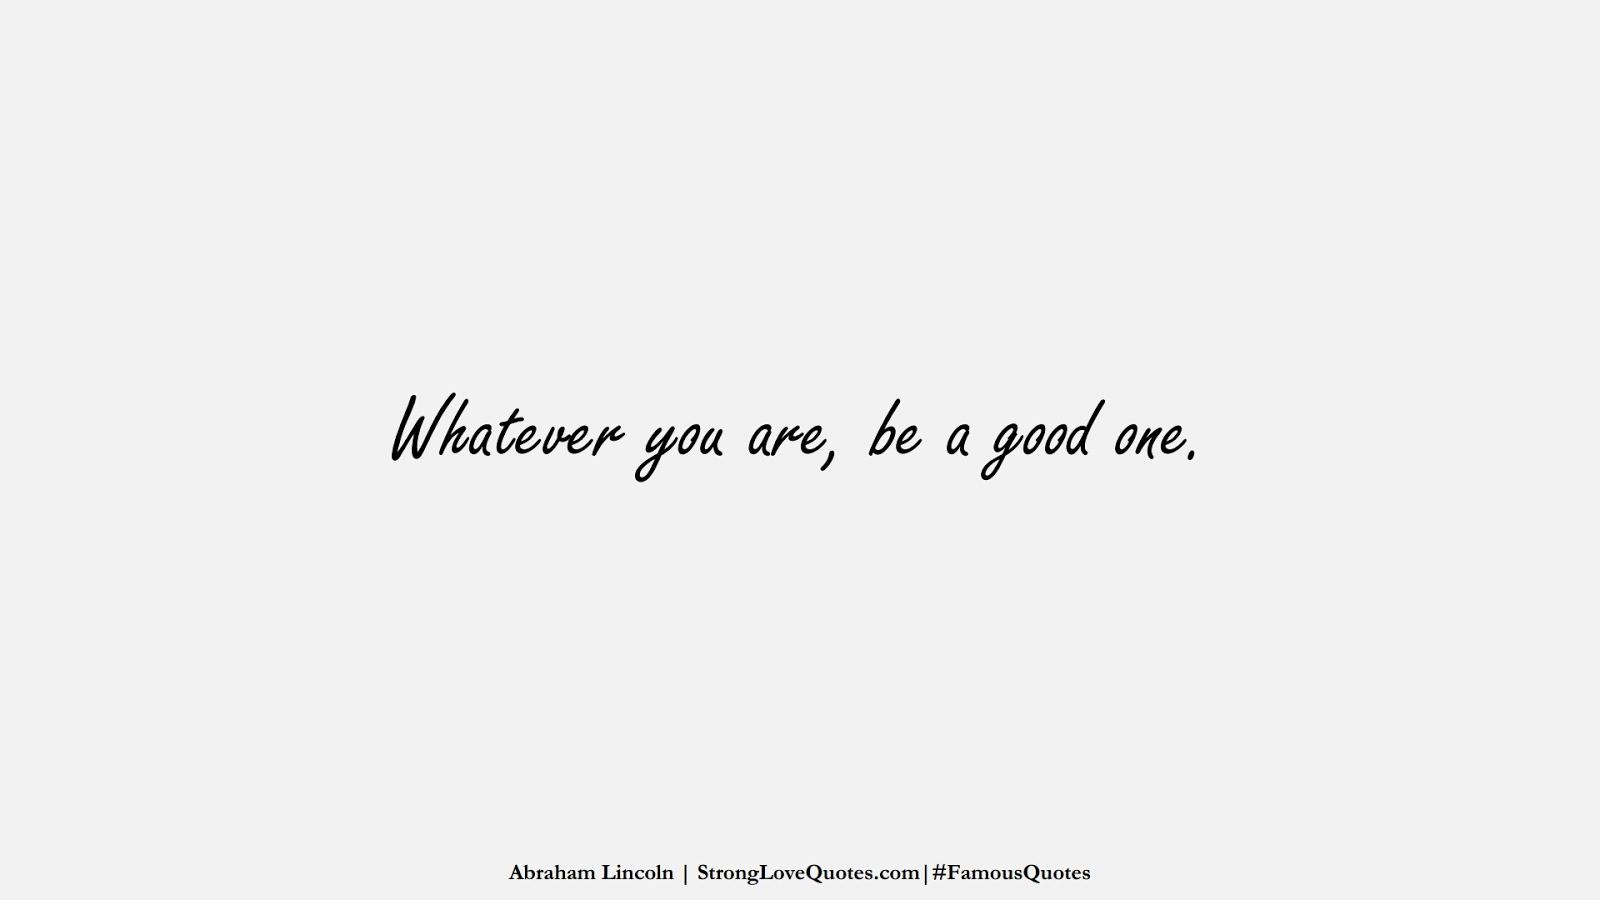 Whatever you are, be a good one. (Abraham Lincoln);  #FamousQuotes